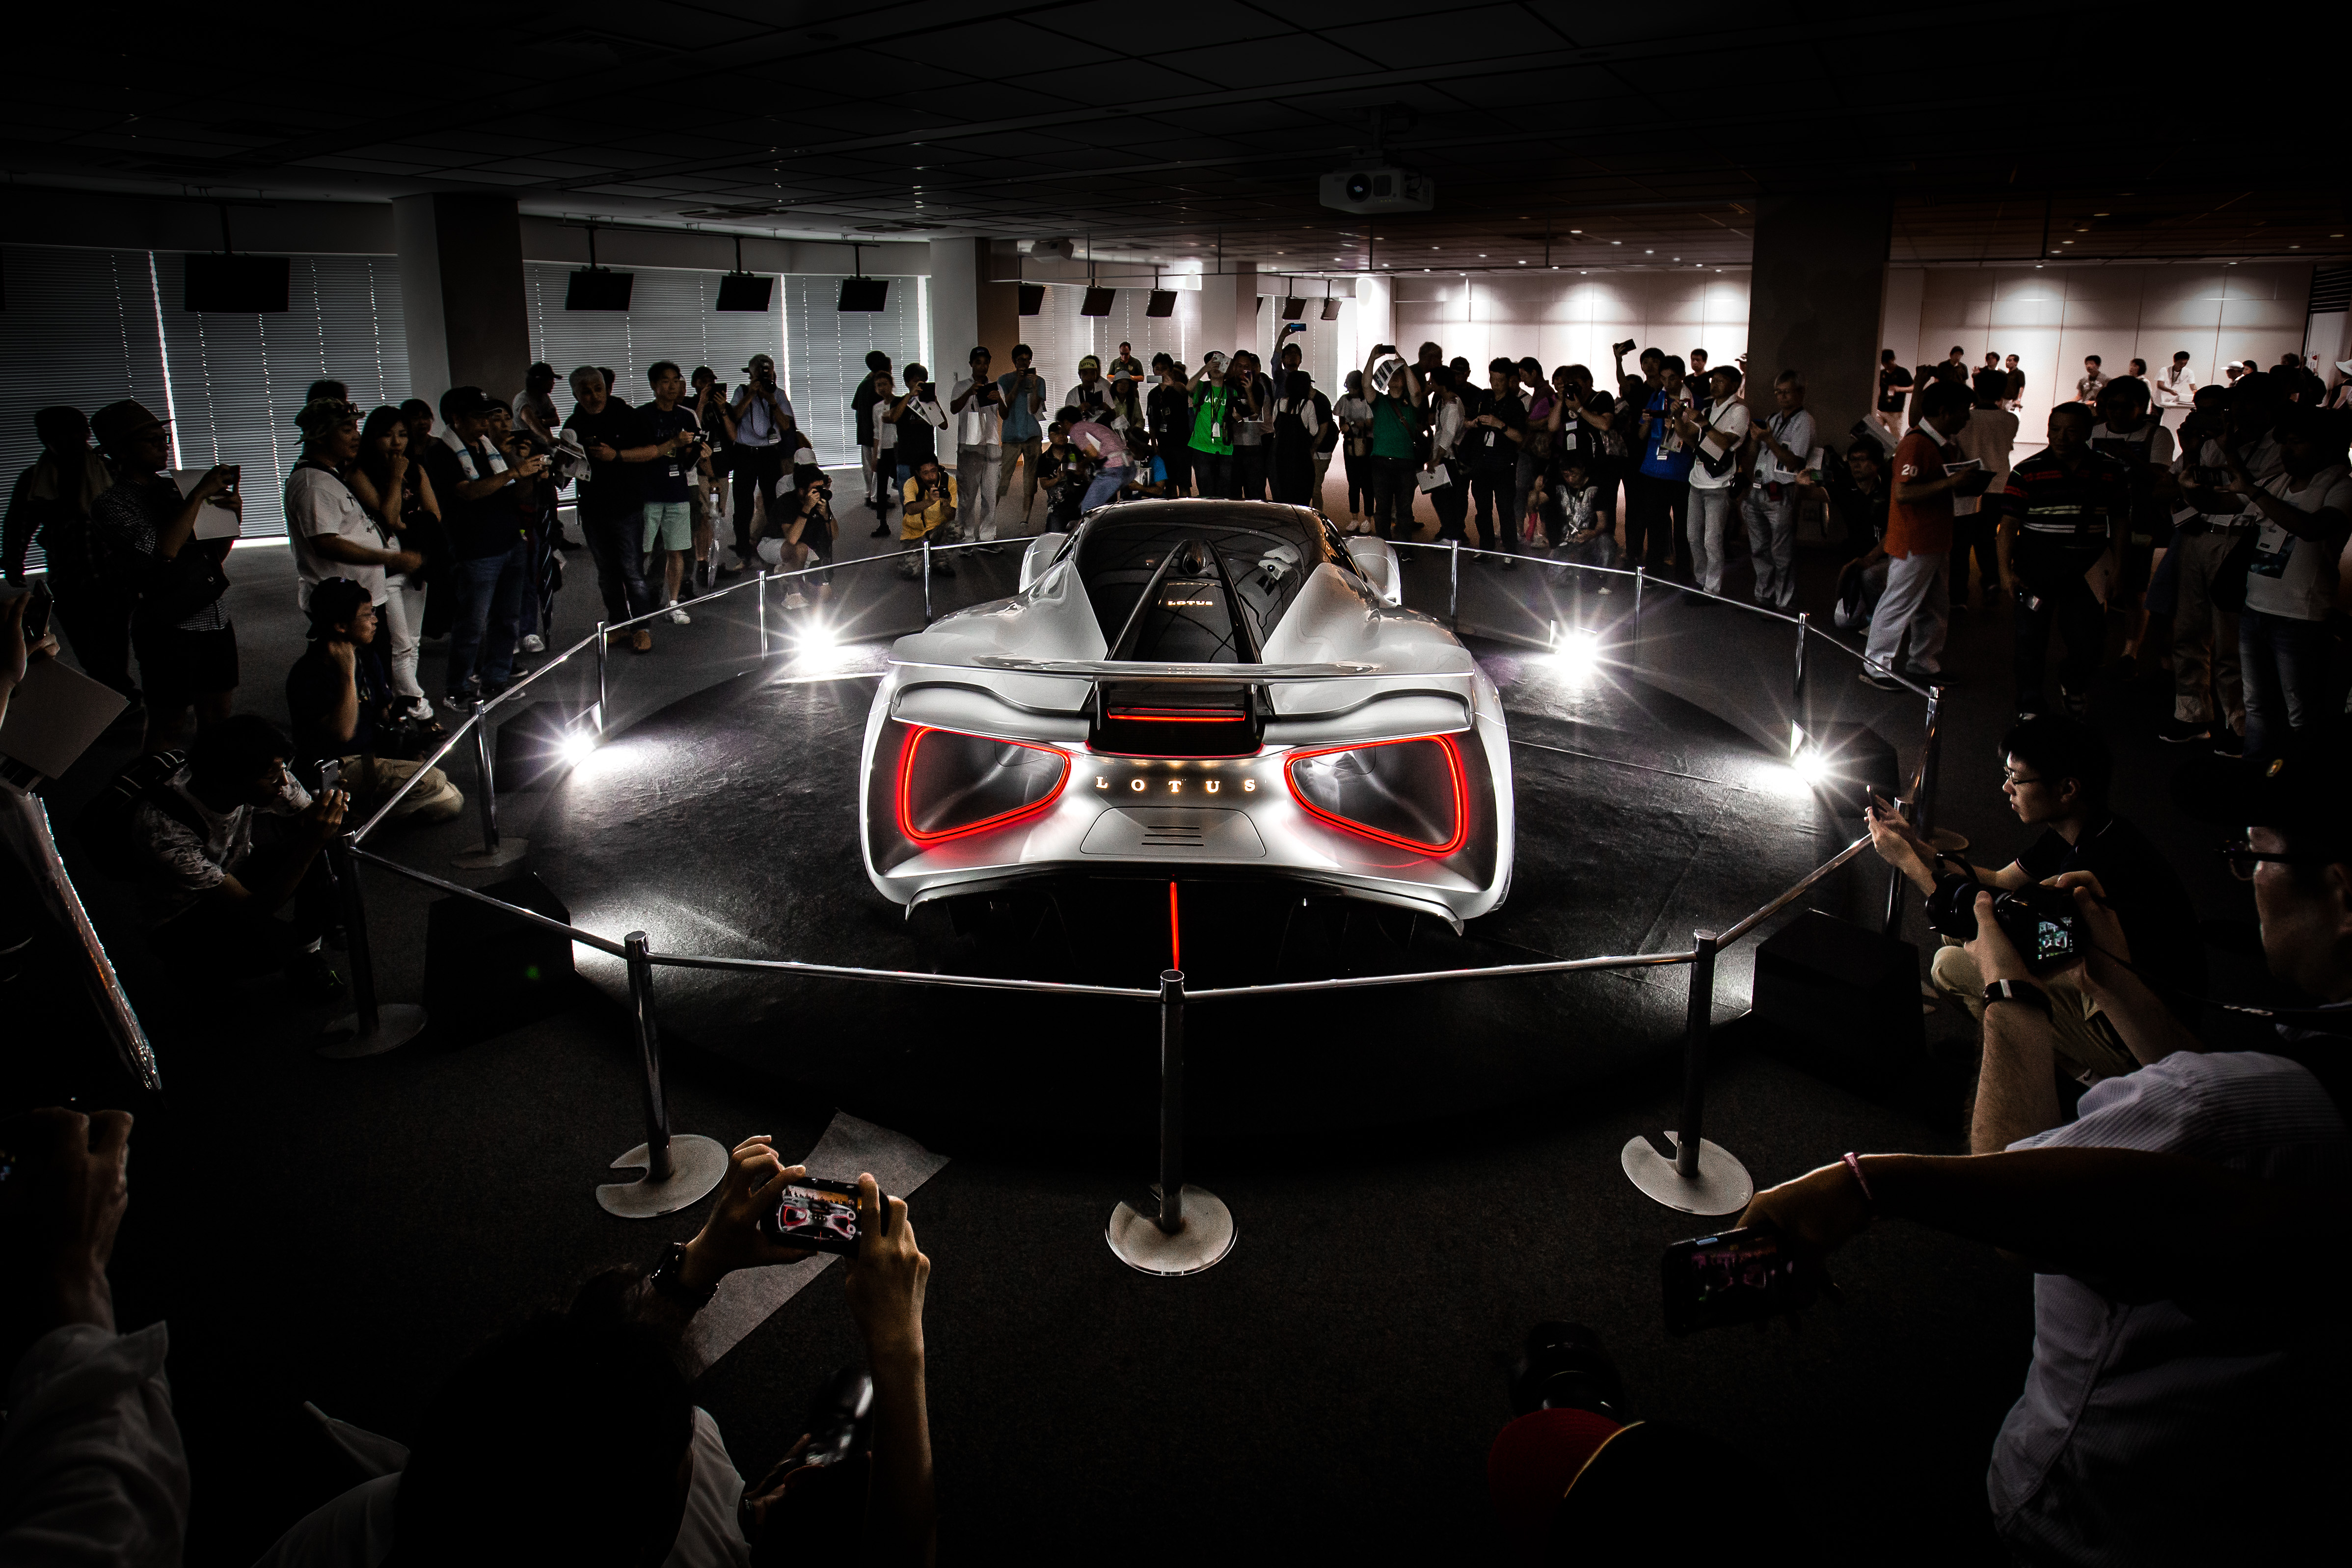 1,000-plus horsepower or go home: The world's most powerful hypercars and megacars